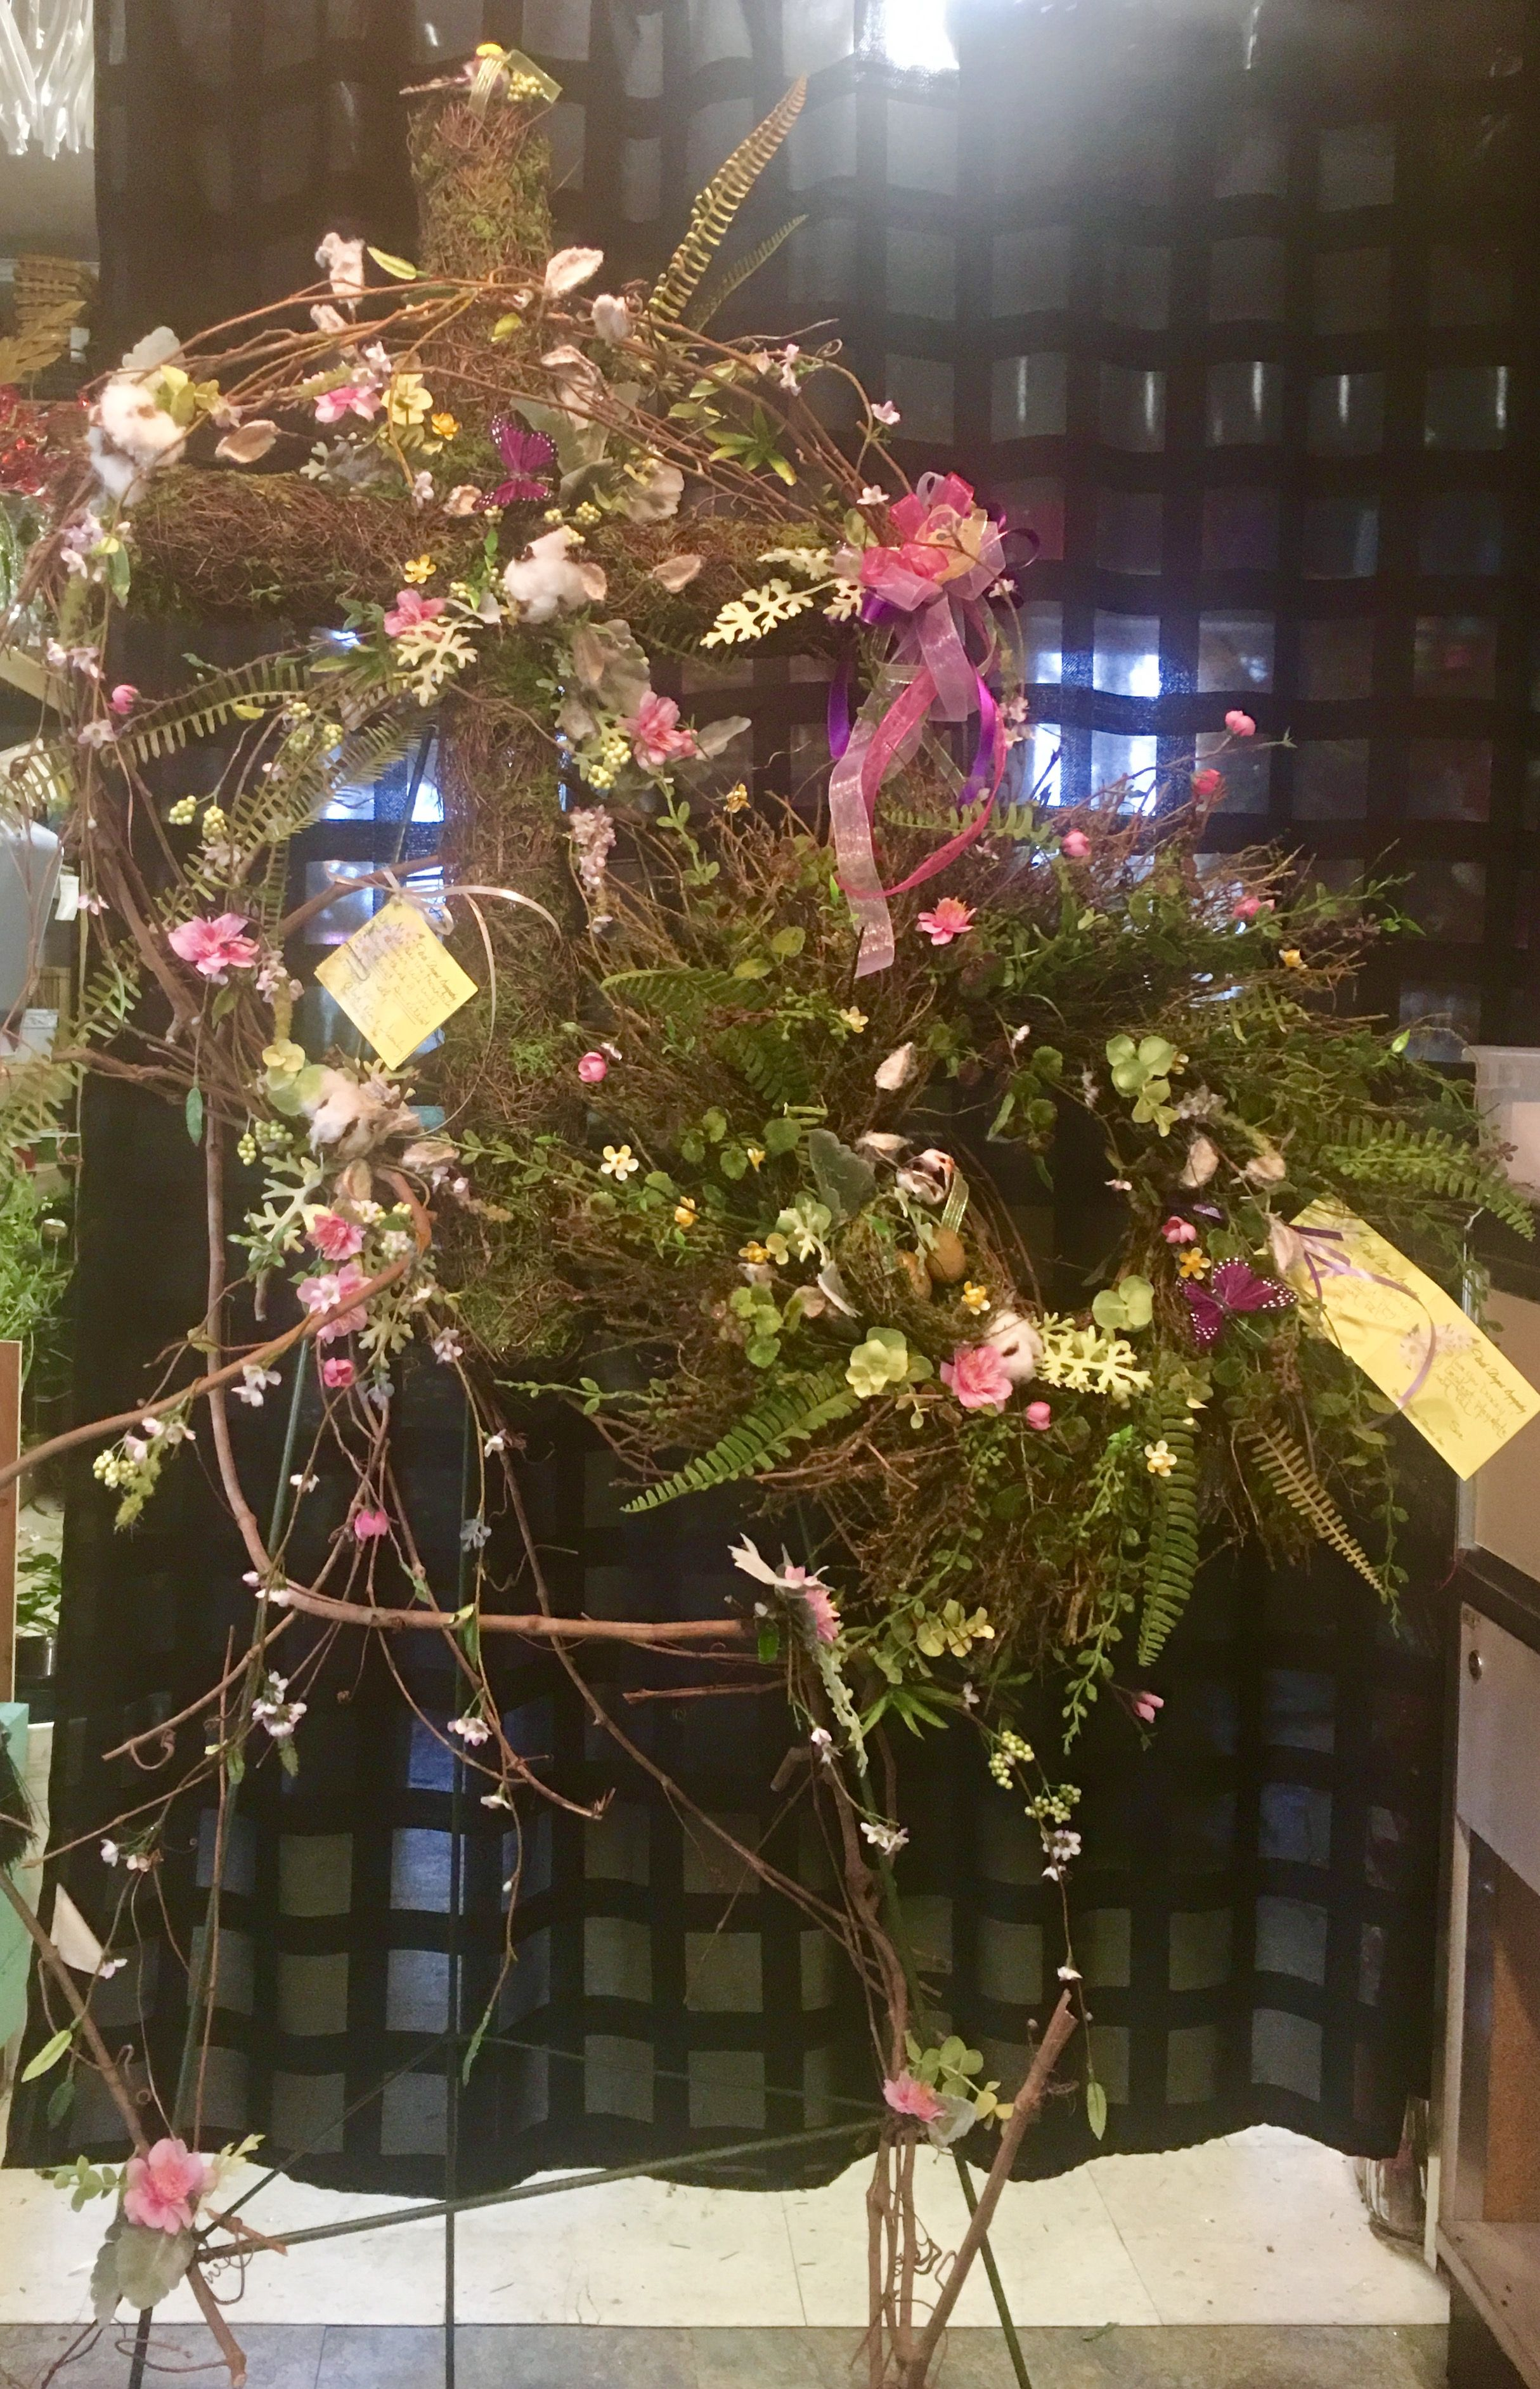 Moss Cross And Wreath With Grapevine And Flowers For Funeral Service